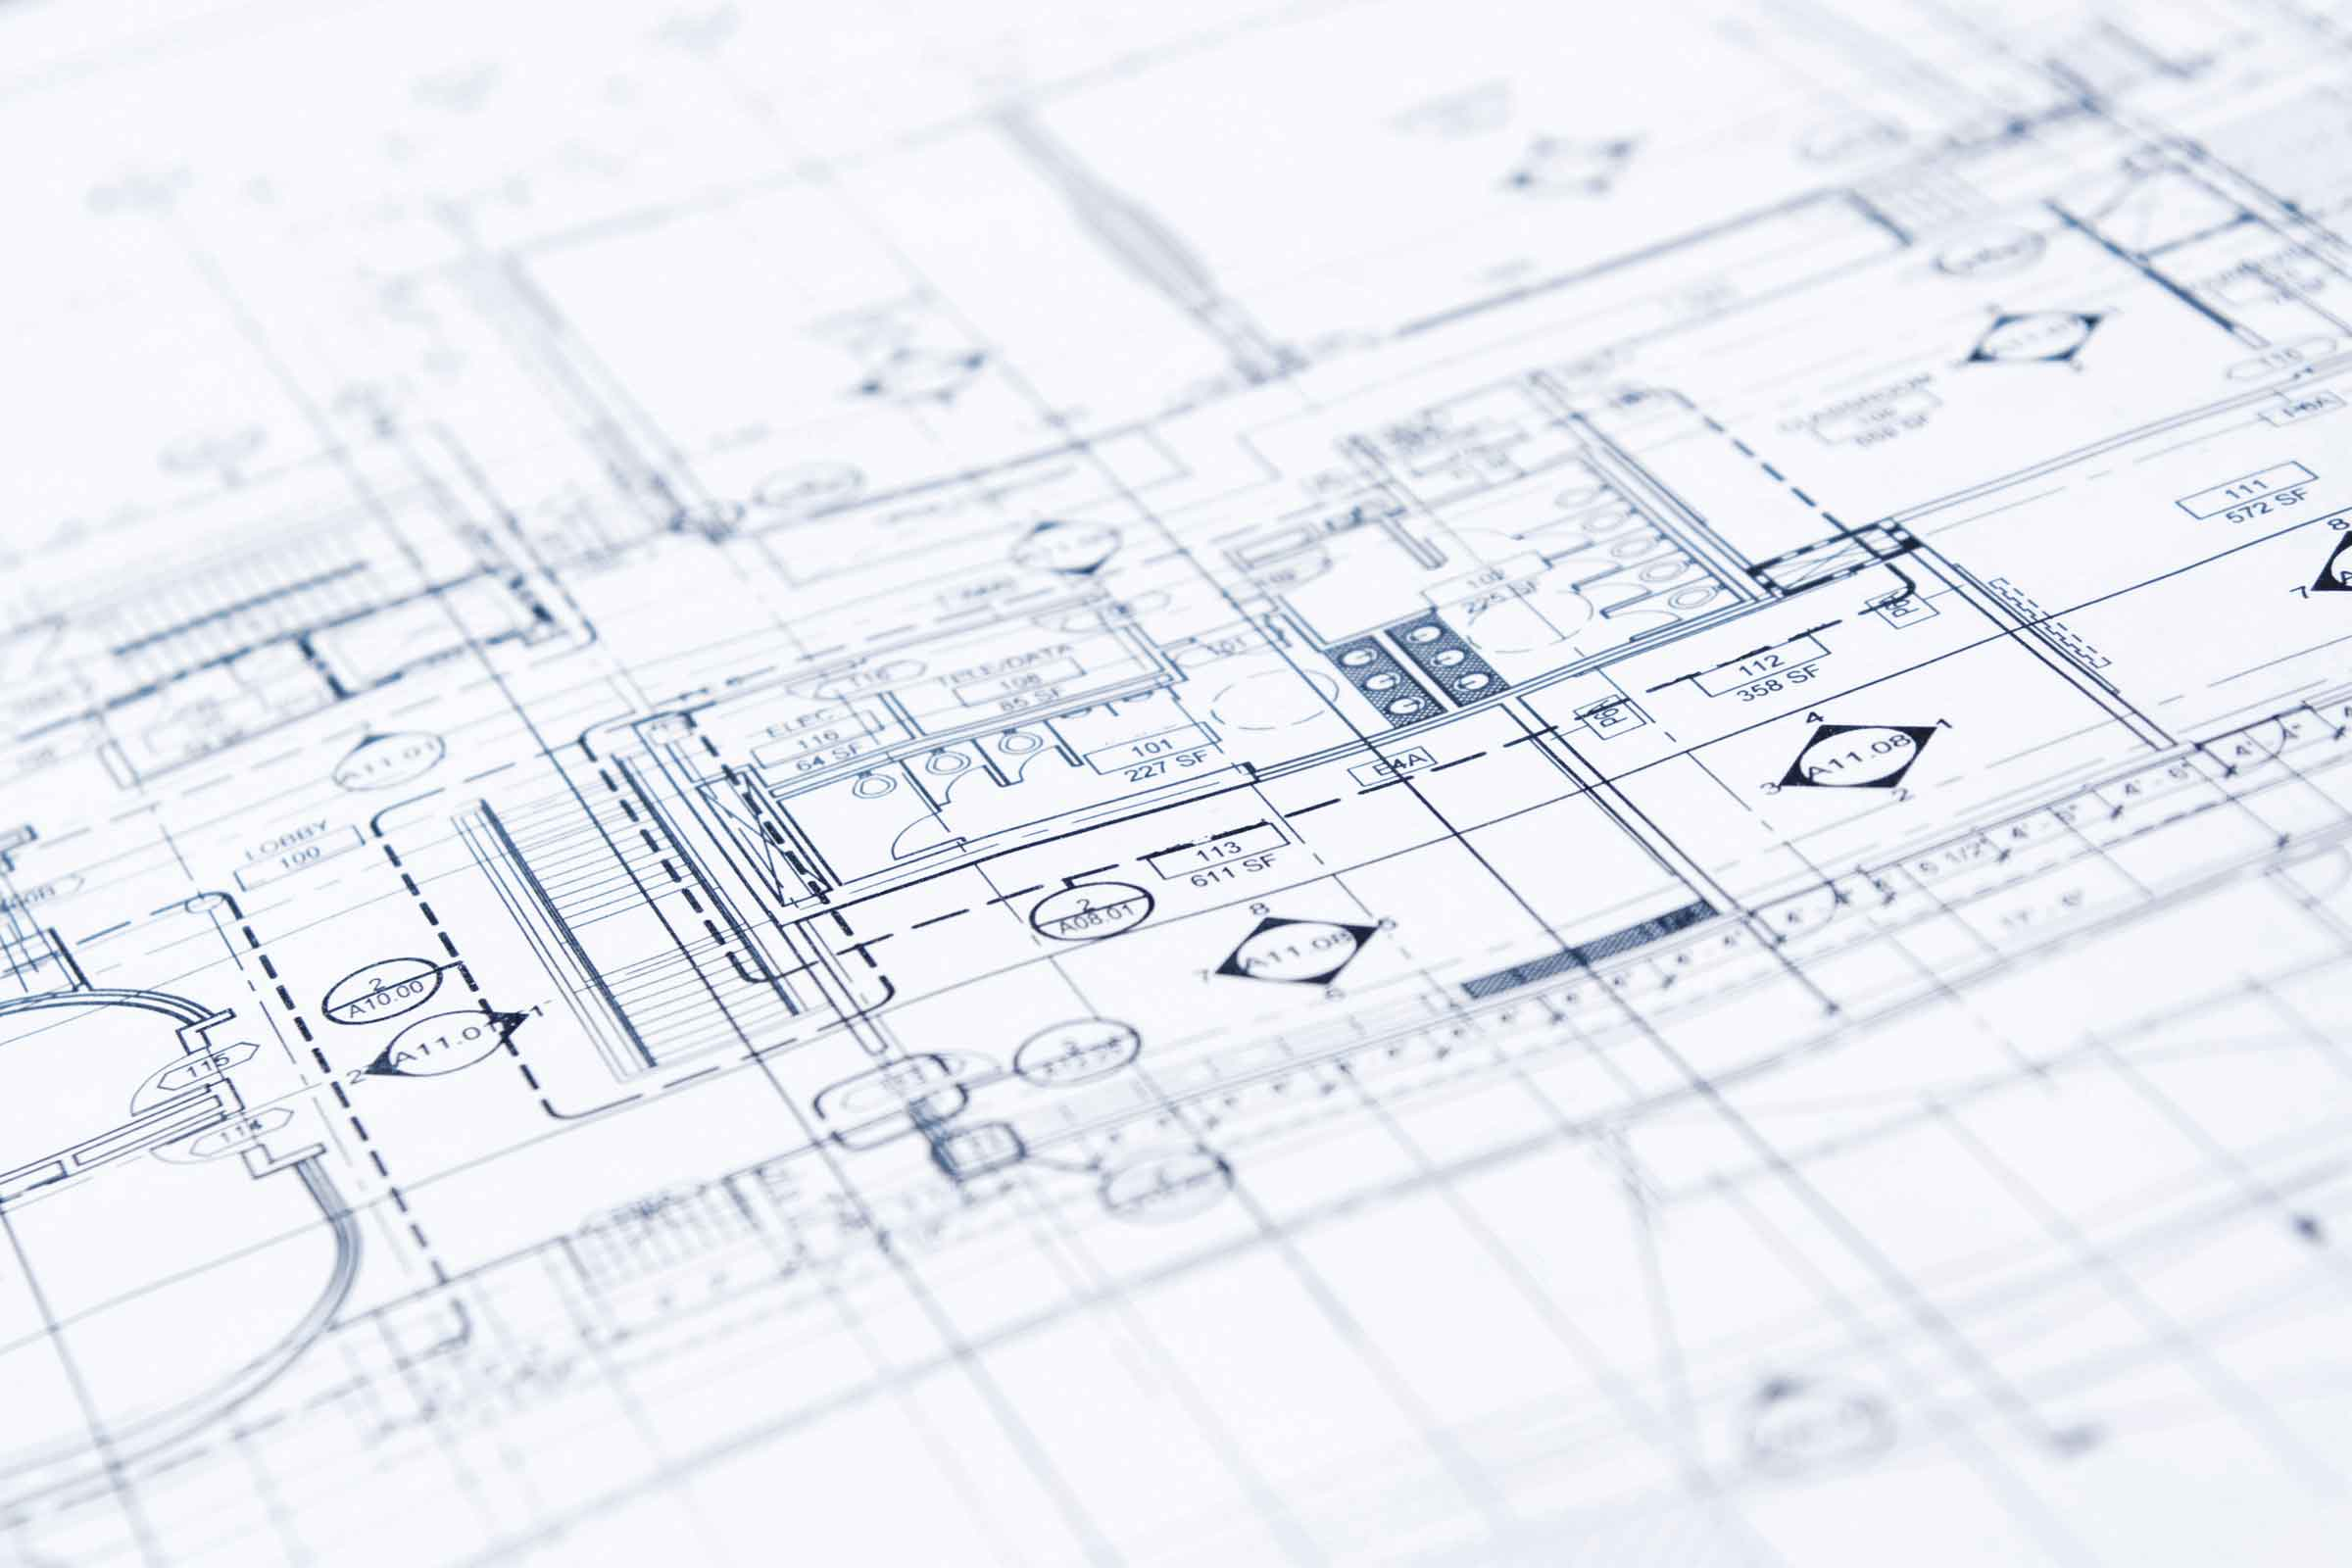 Architecture Blueprints Wallpaper blueprint prints images - reverse search